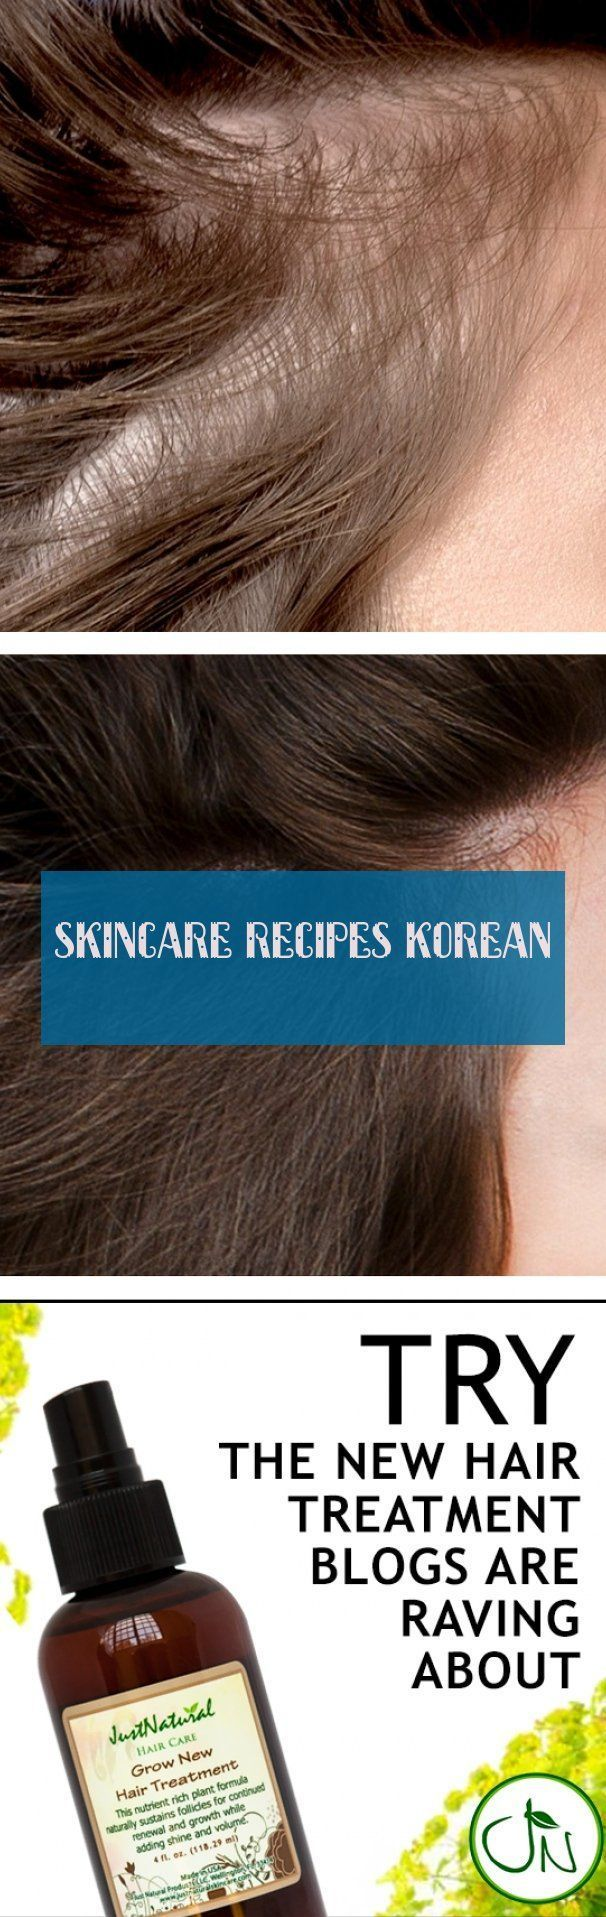 skincare recipes Korean; skincare recipes korean - #skin carerecipes #co ...  -  Hautpflege-Rezepte